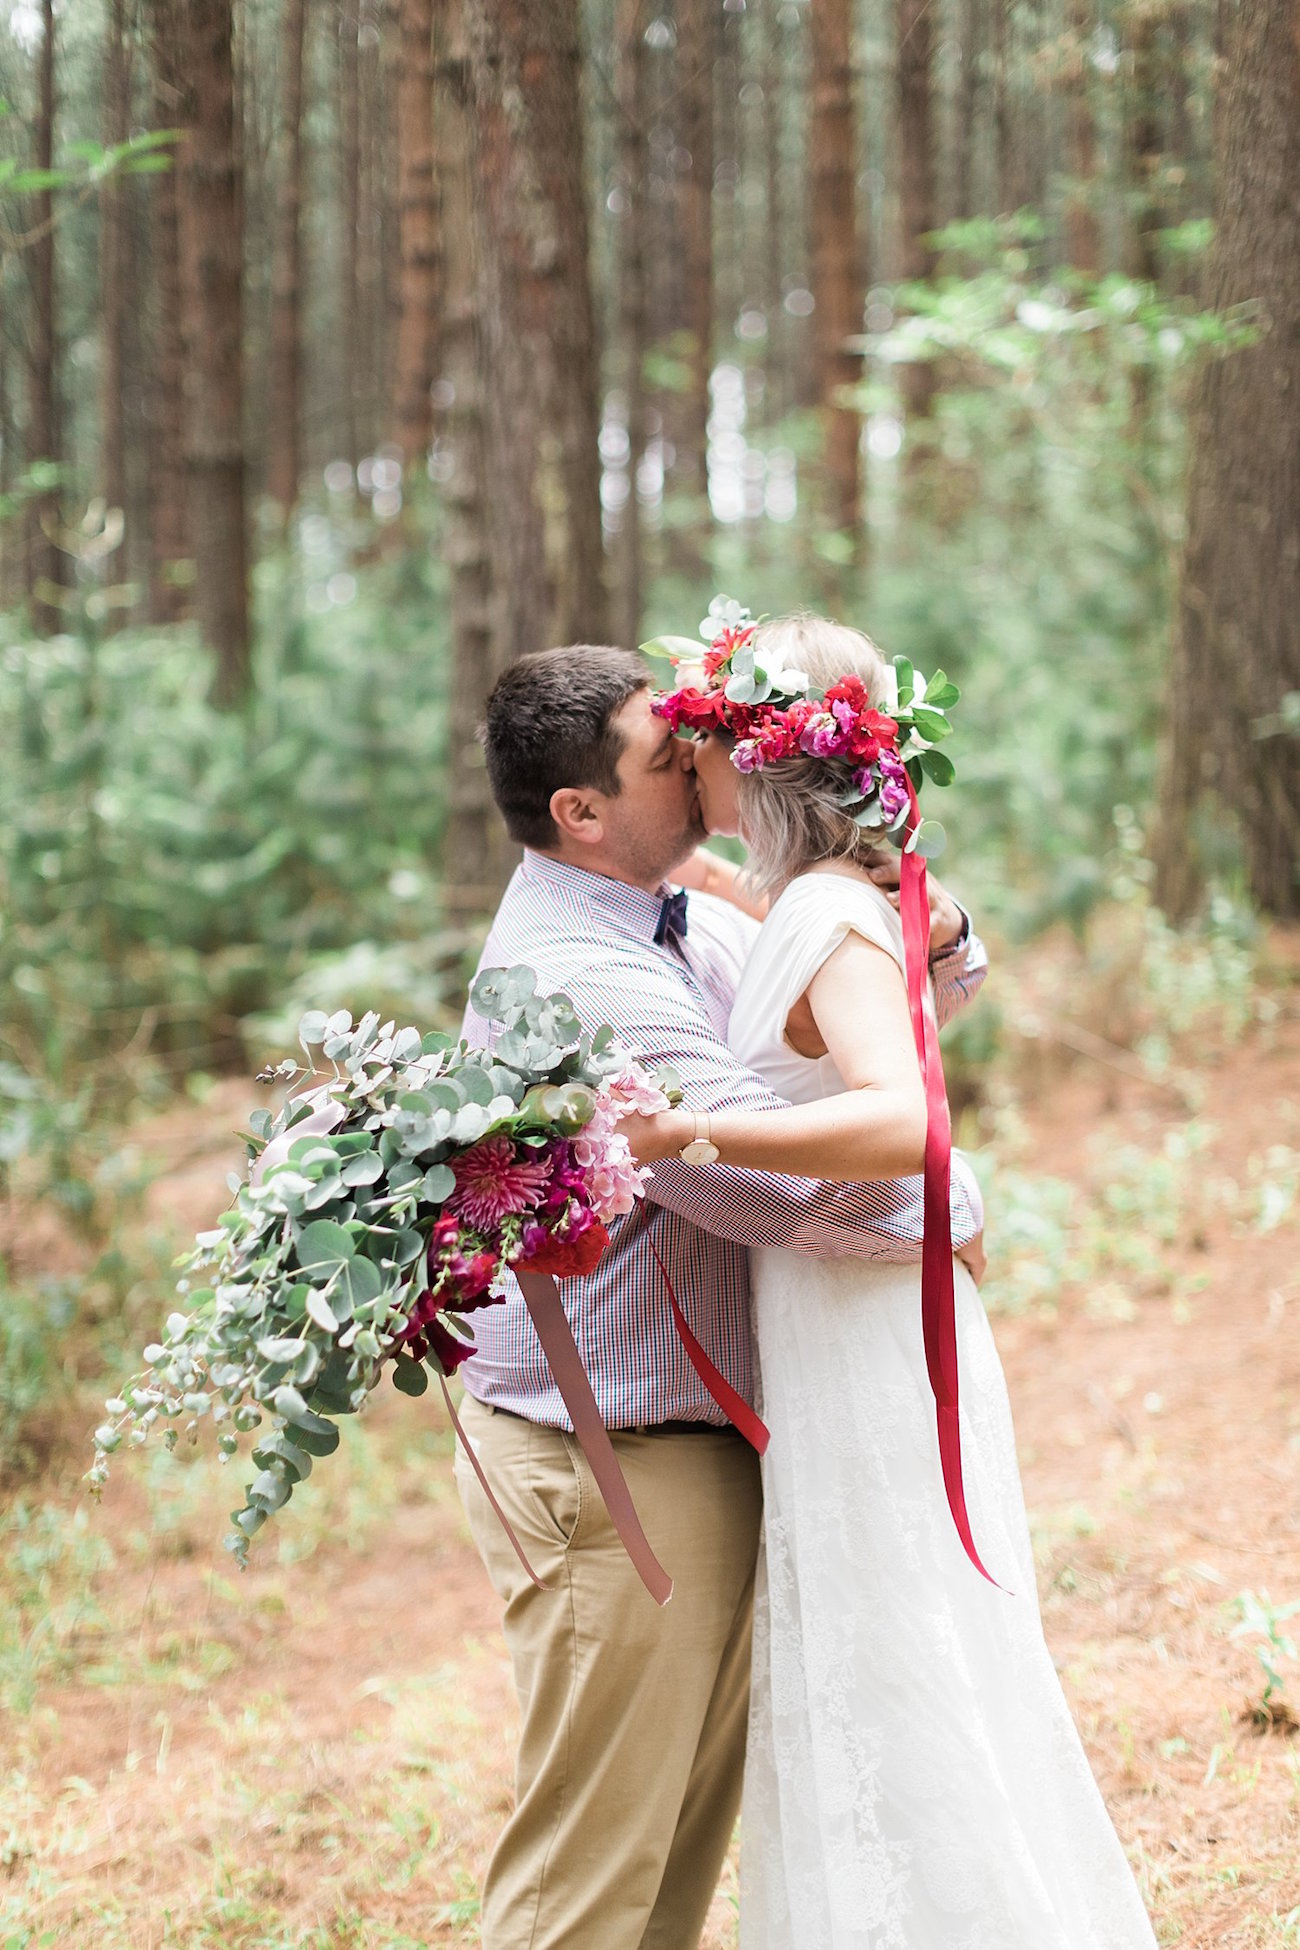 Forest Wedding Ceremony | Image: Alicia Landman